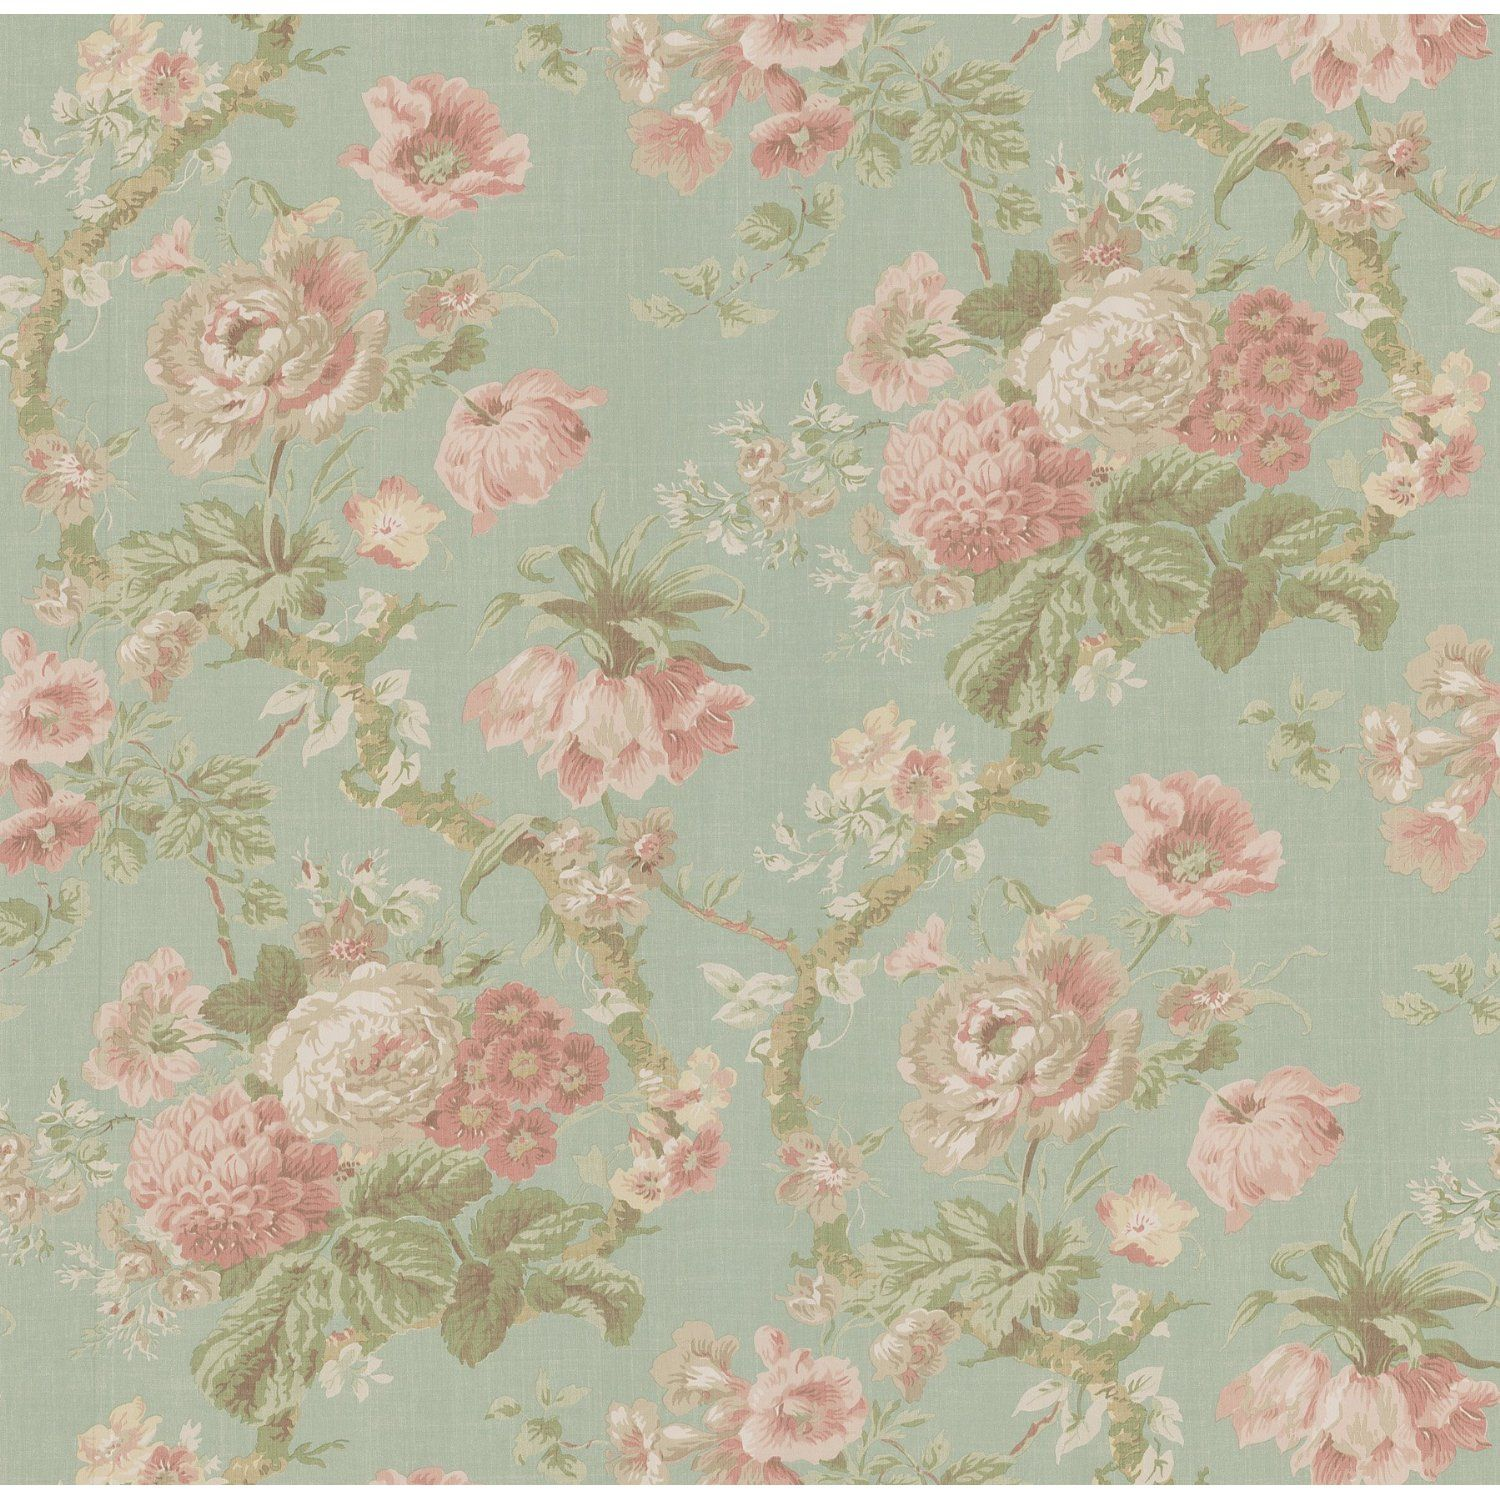 Vintage Wallpaper Tumblr - QyGjxZ